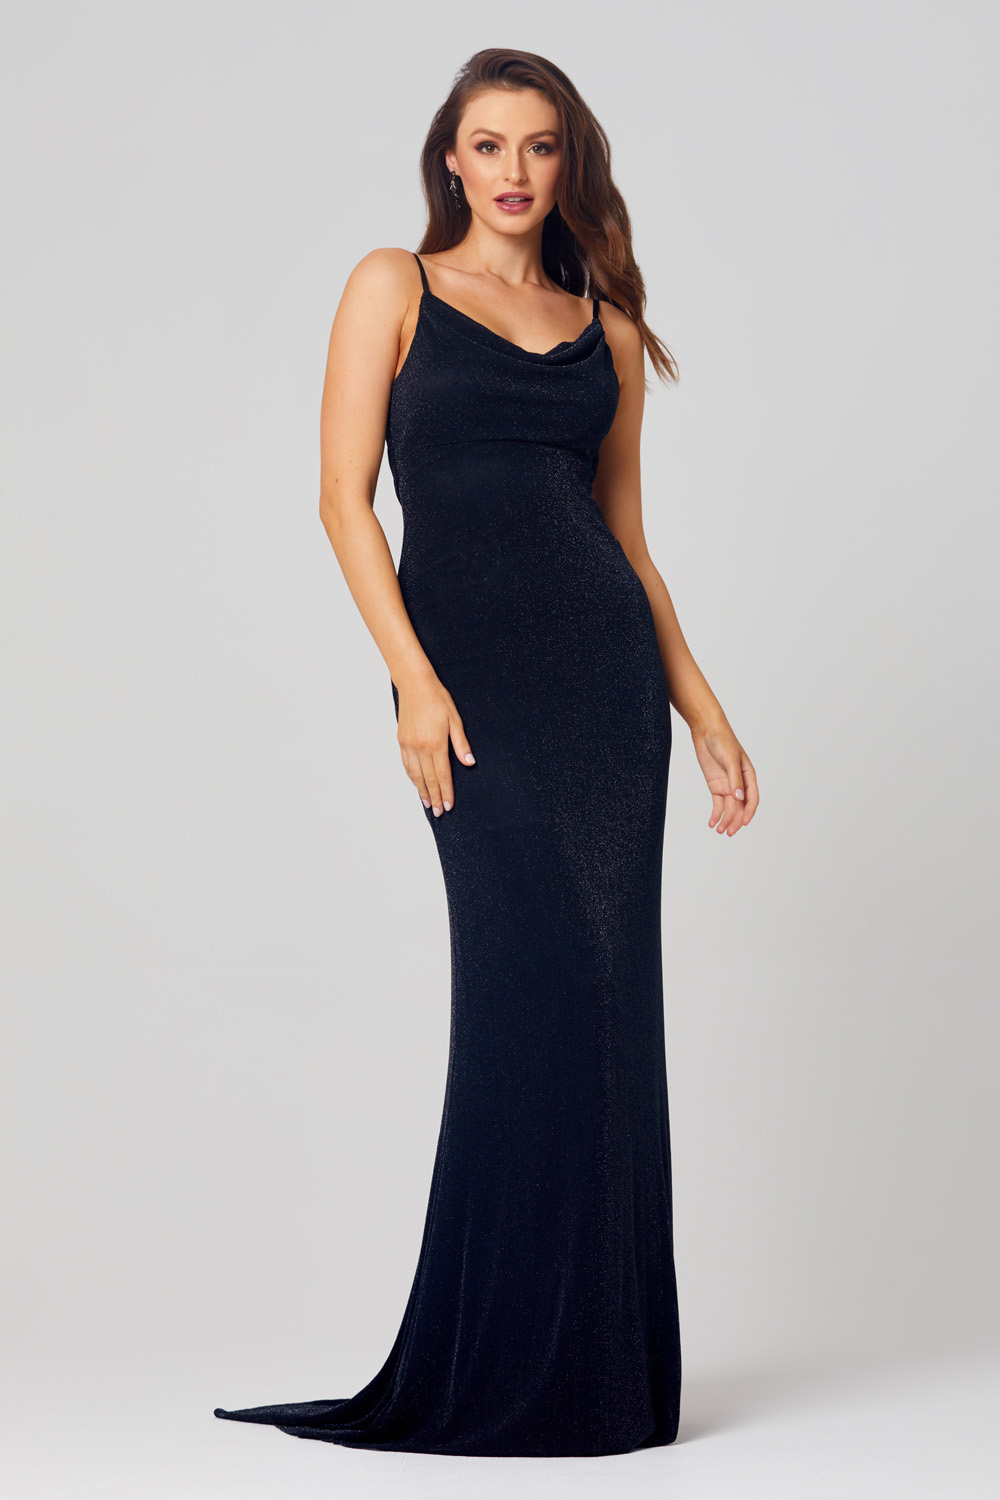 Jessie Cowl Neck Evening Dress - PO811